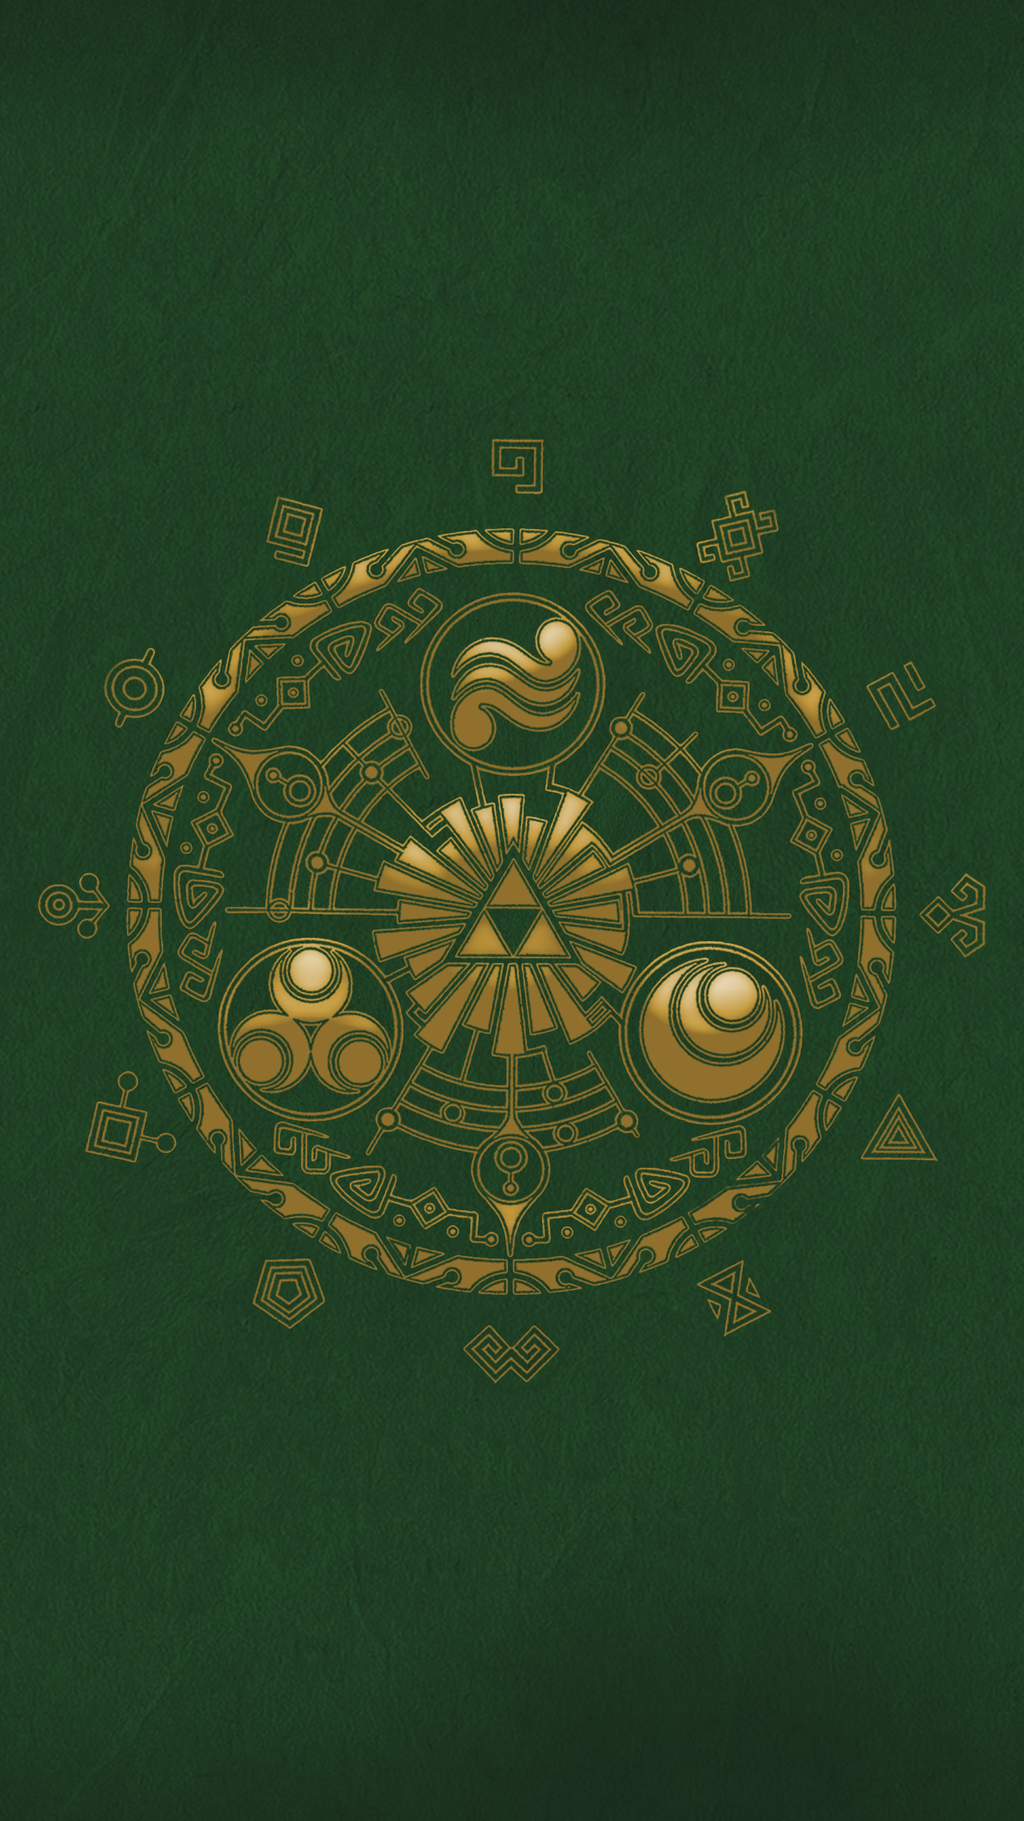 50+] Legend of Zelda iPhone Wallpaper on WallpaperSafari